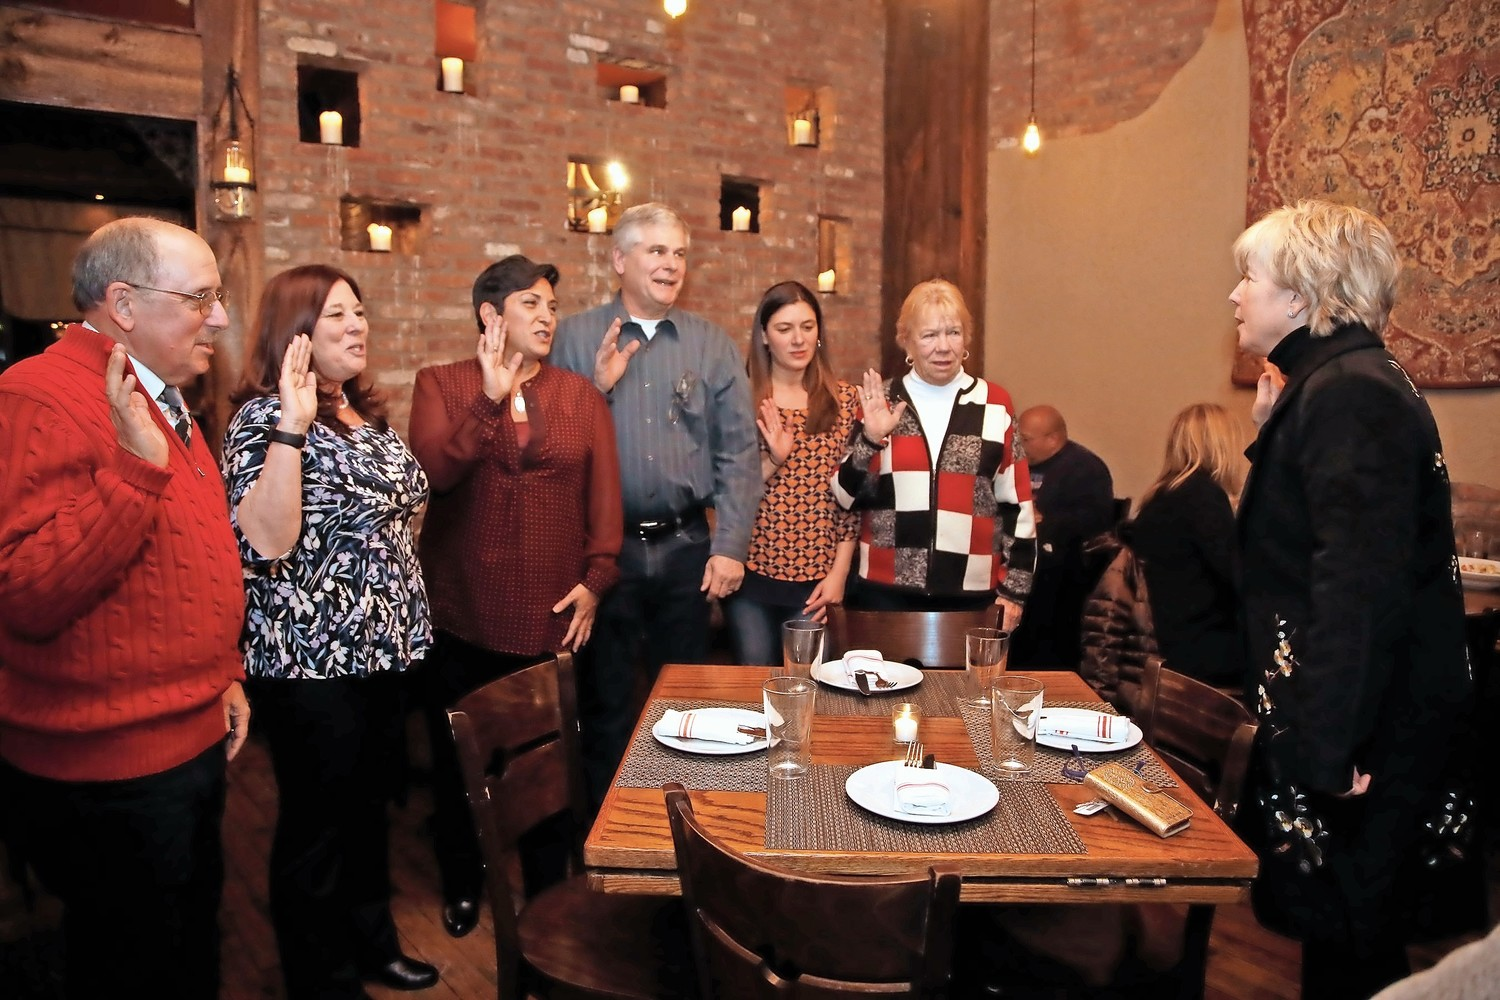 On Jan. 9, Mayor Patti McDonald swore in Malverne Chamber officers, Henry Stampfel, far left, Kathi Monroe, Maria Casini, Brian Monaghan, Jillian Hughes and Kathy Ribaudo.